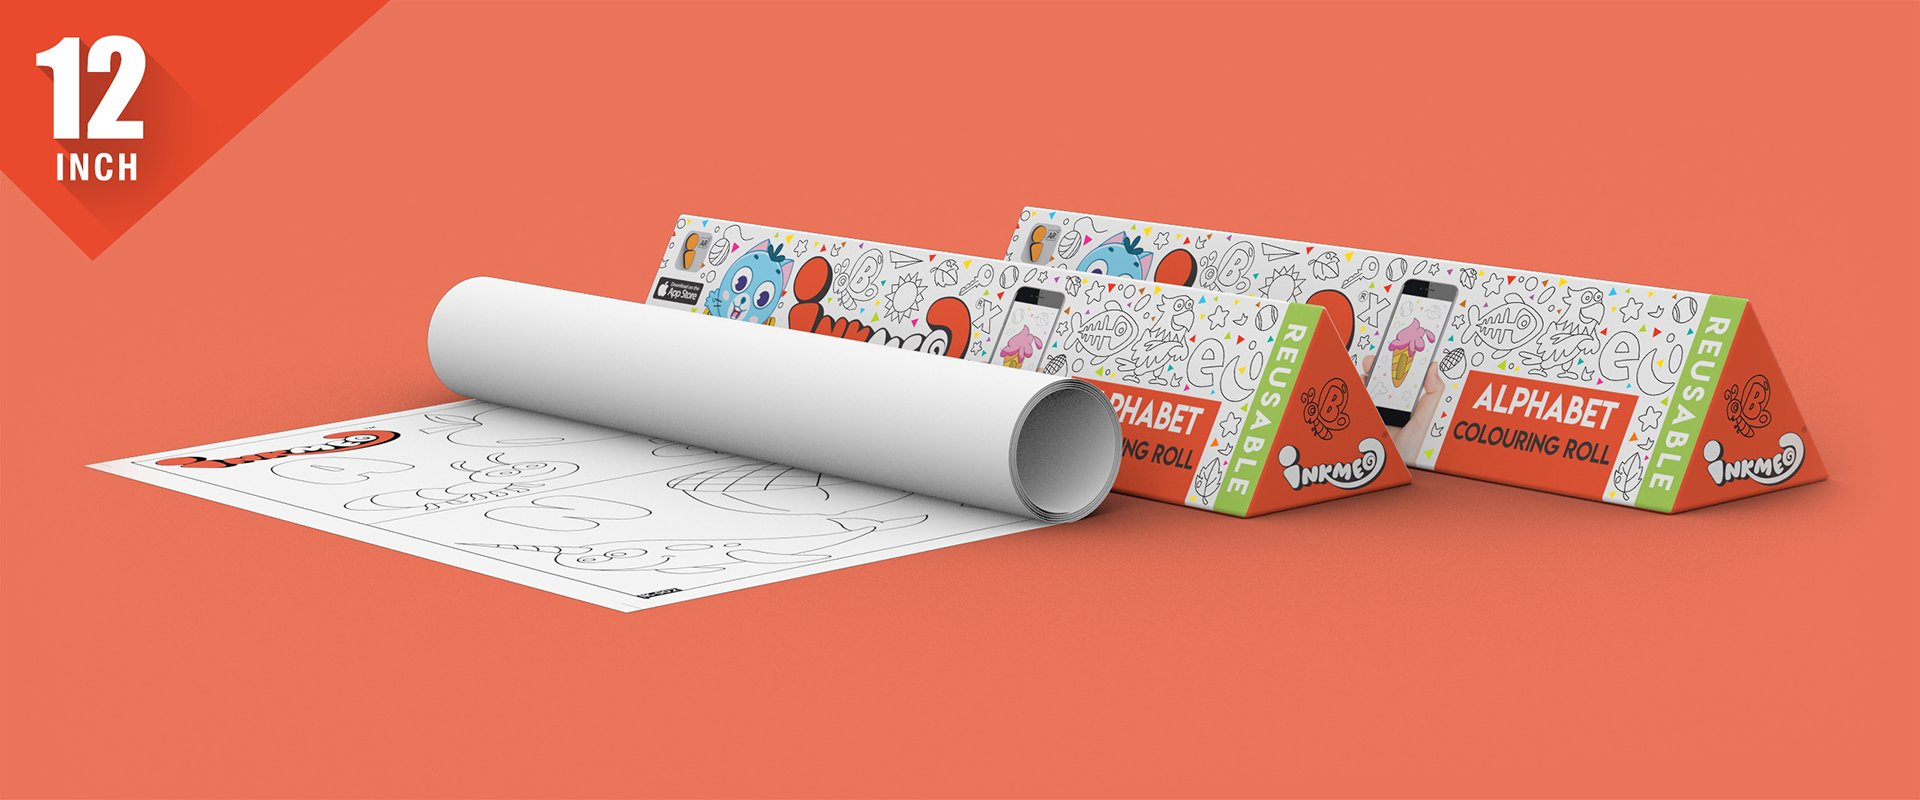 Alphabet Colouring Roll (12 inch) - Inkmeo